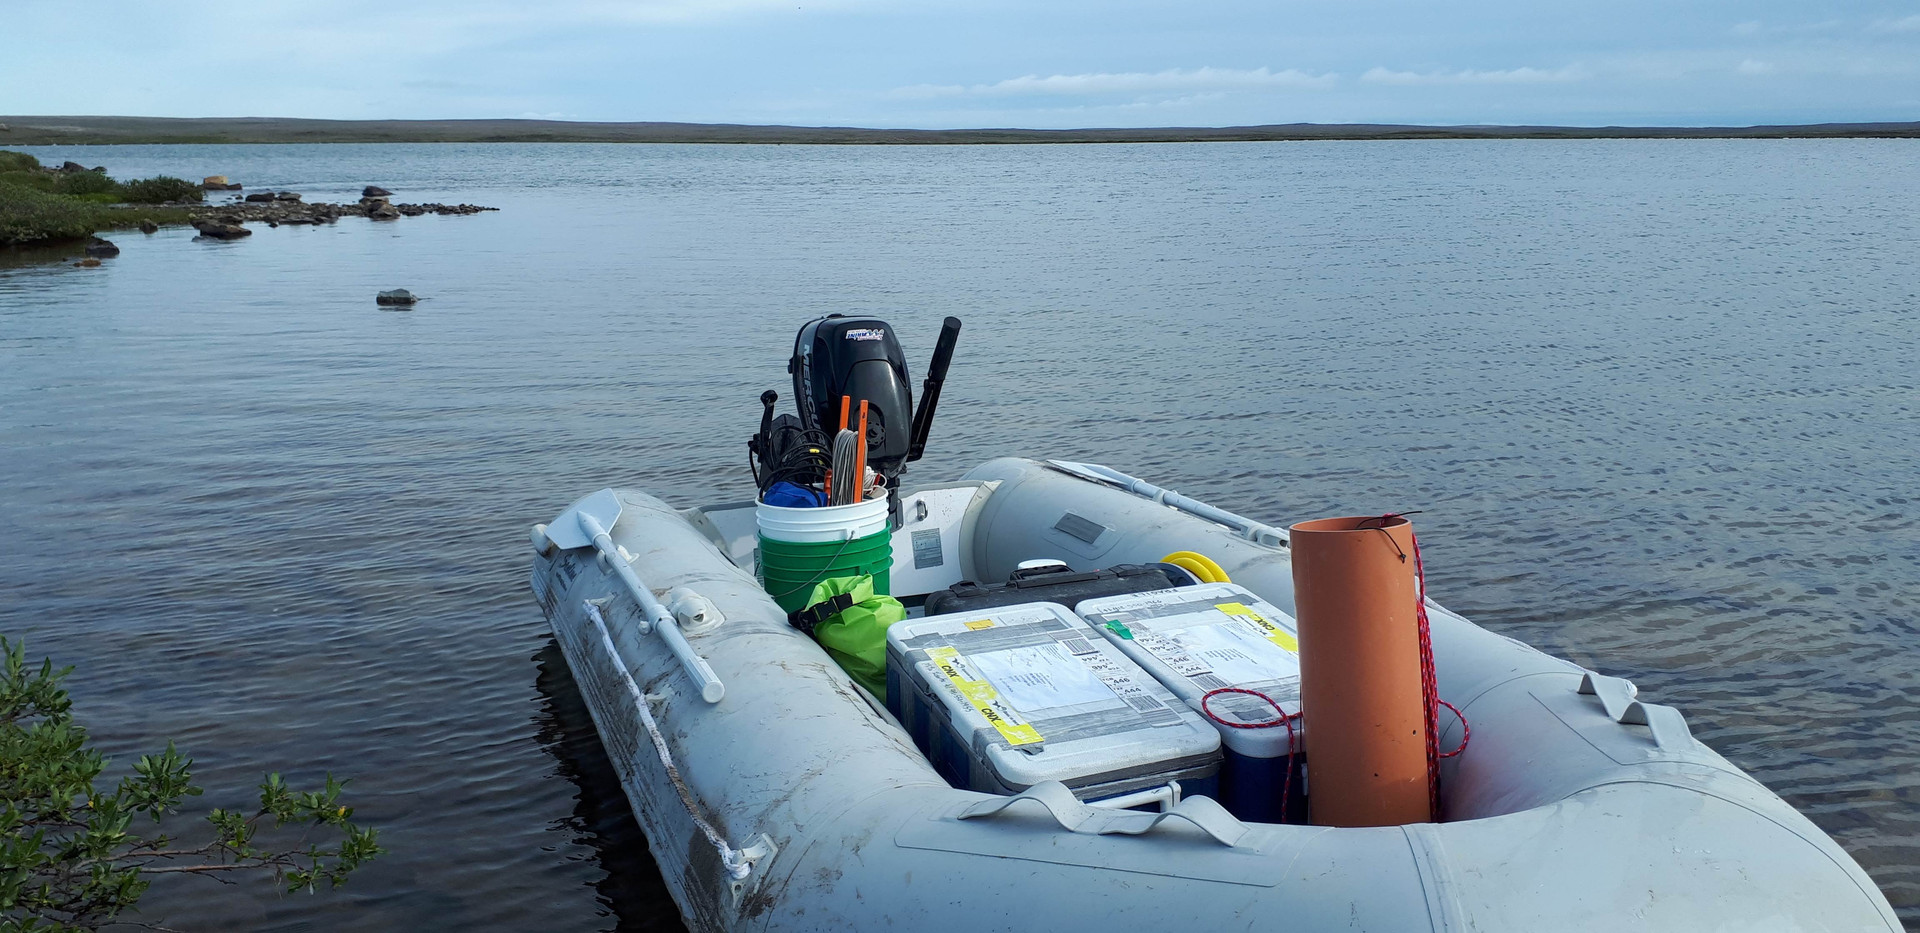 Ready to go get some water samples on lake VG3